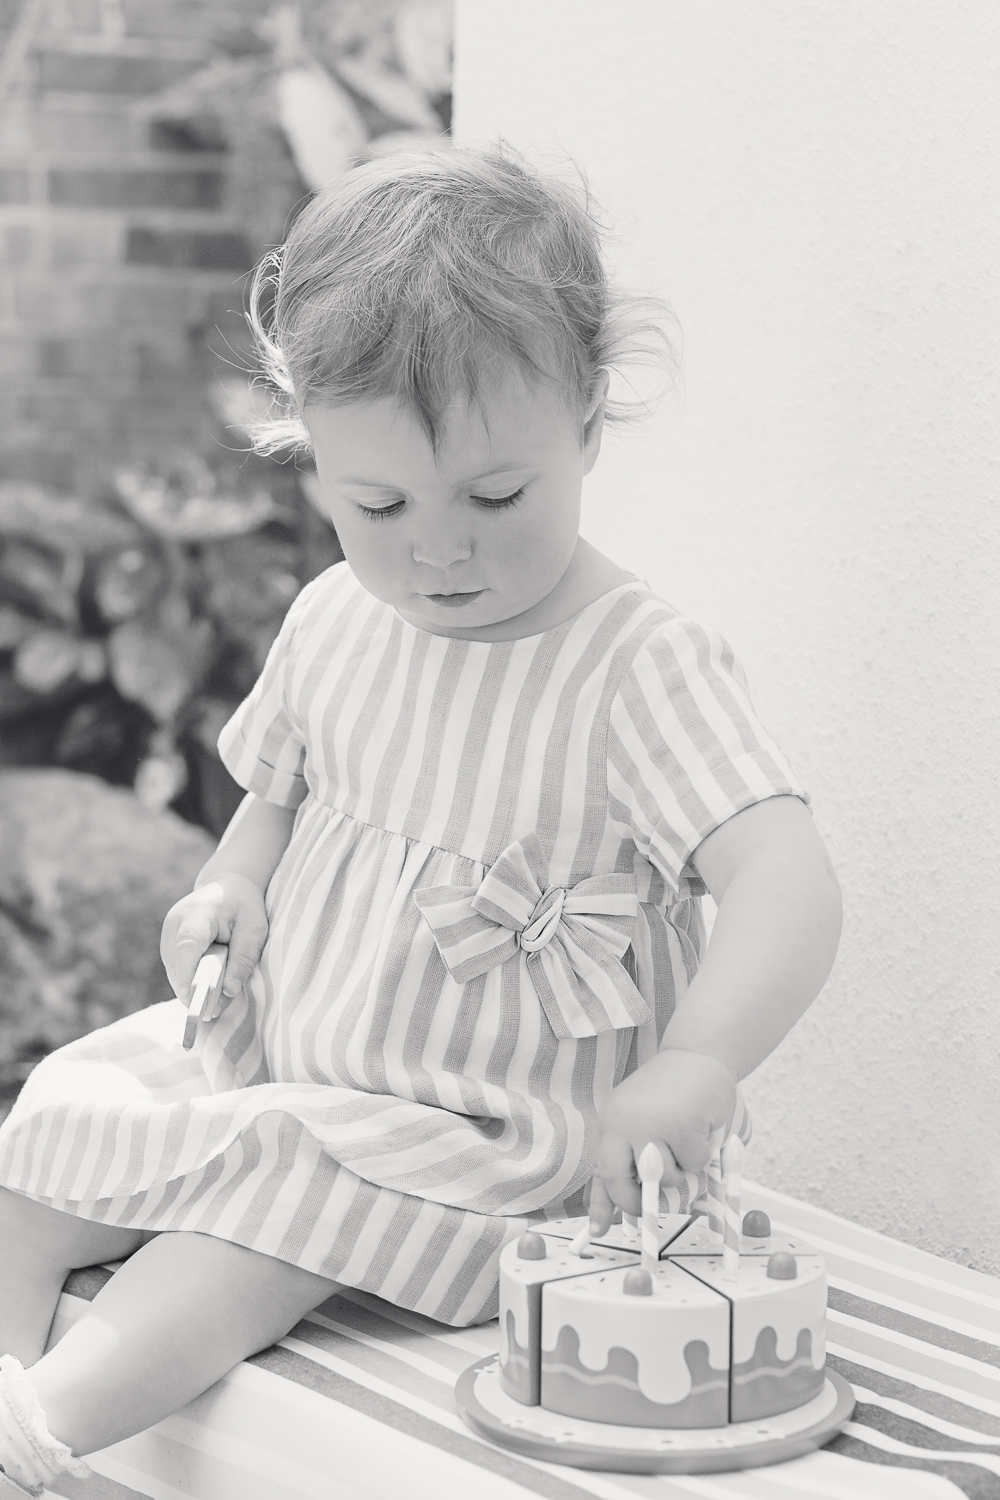 Black and white fine art image of a little girls second birthday party - she sits on her own playing with her pretend wooden cake and candles